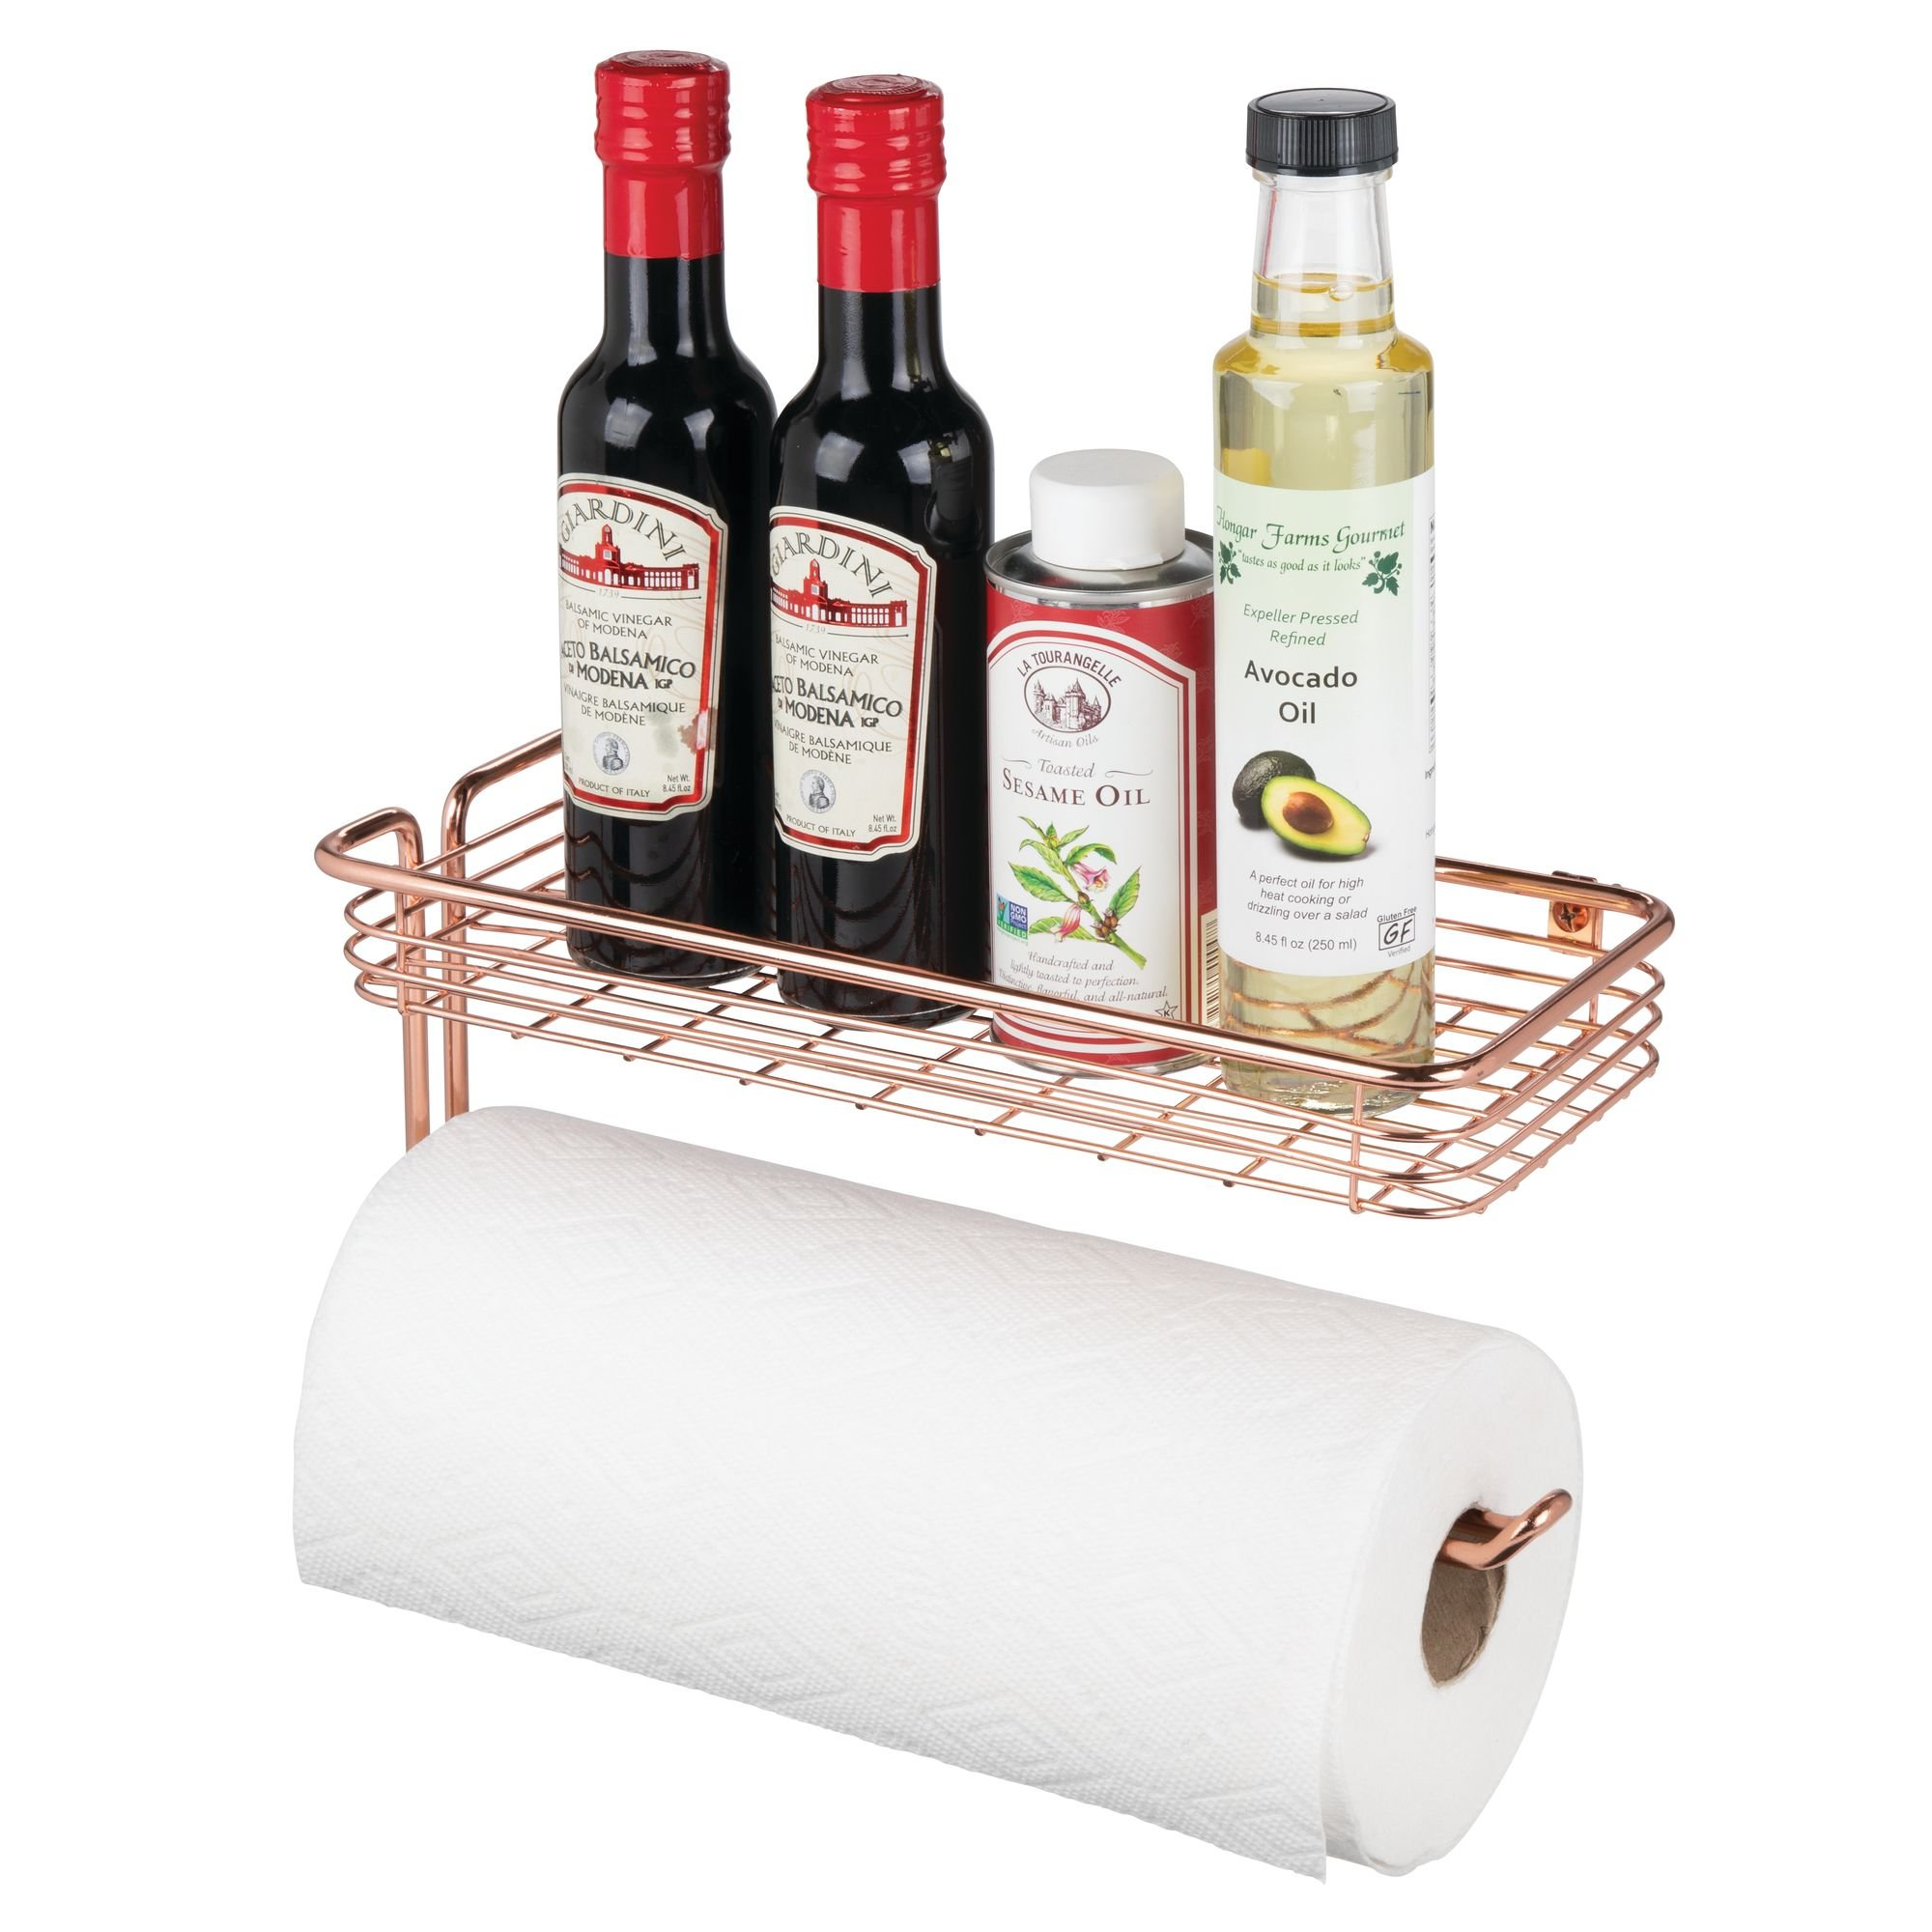 mDesign Paper Towel Holder with Spice Rack and Multi-Purpose Shelf - Wall Mount Storage Organizer for Kitchen, Pantry, Laundry, Garage - Durable Steel Wire Design, Rose Gold by mDesign